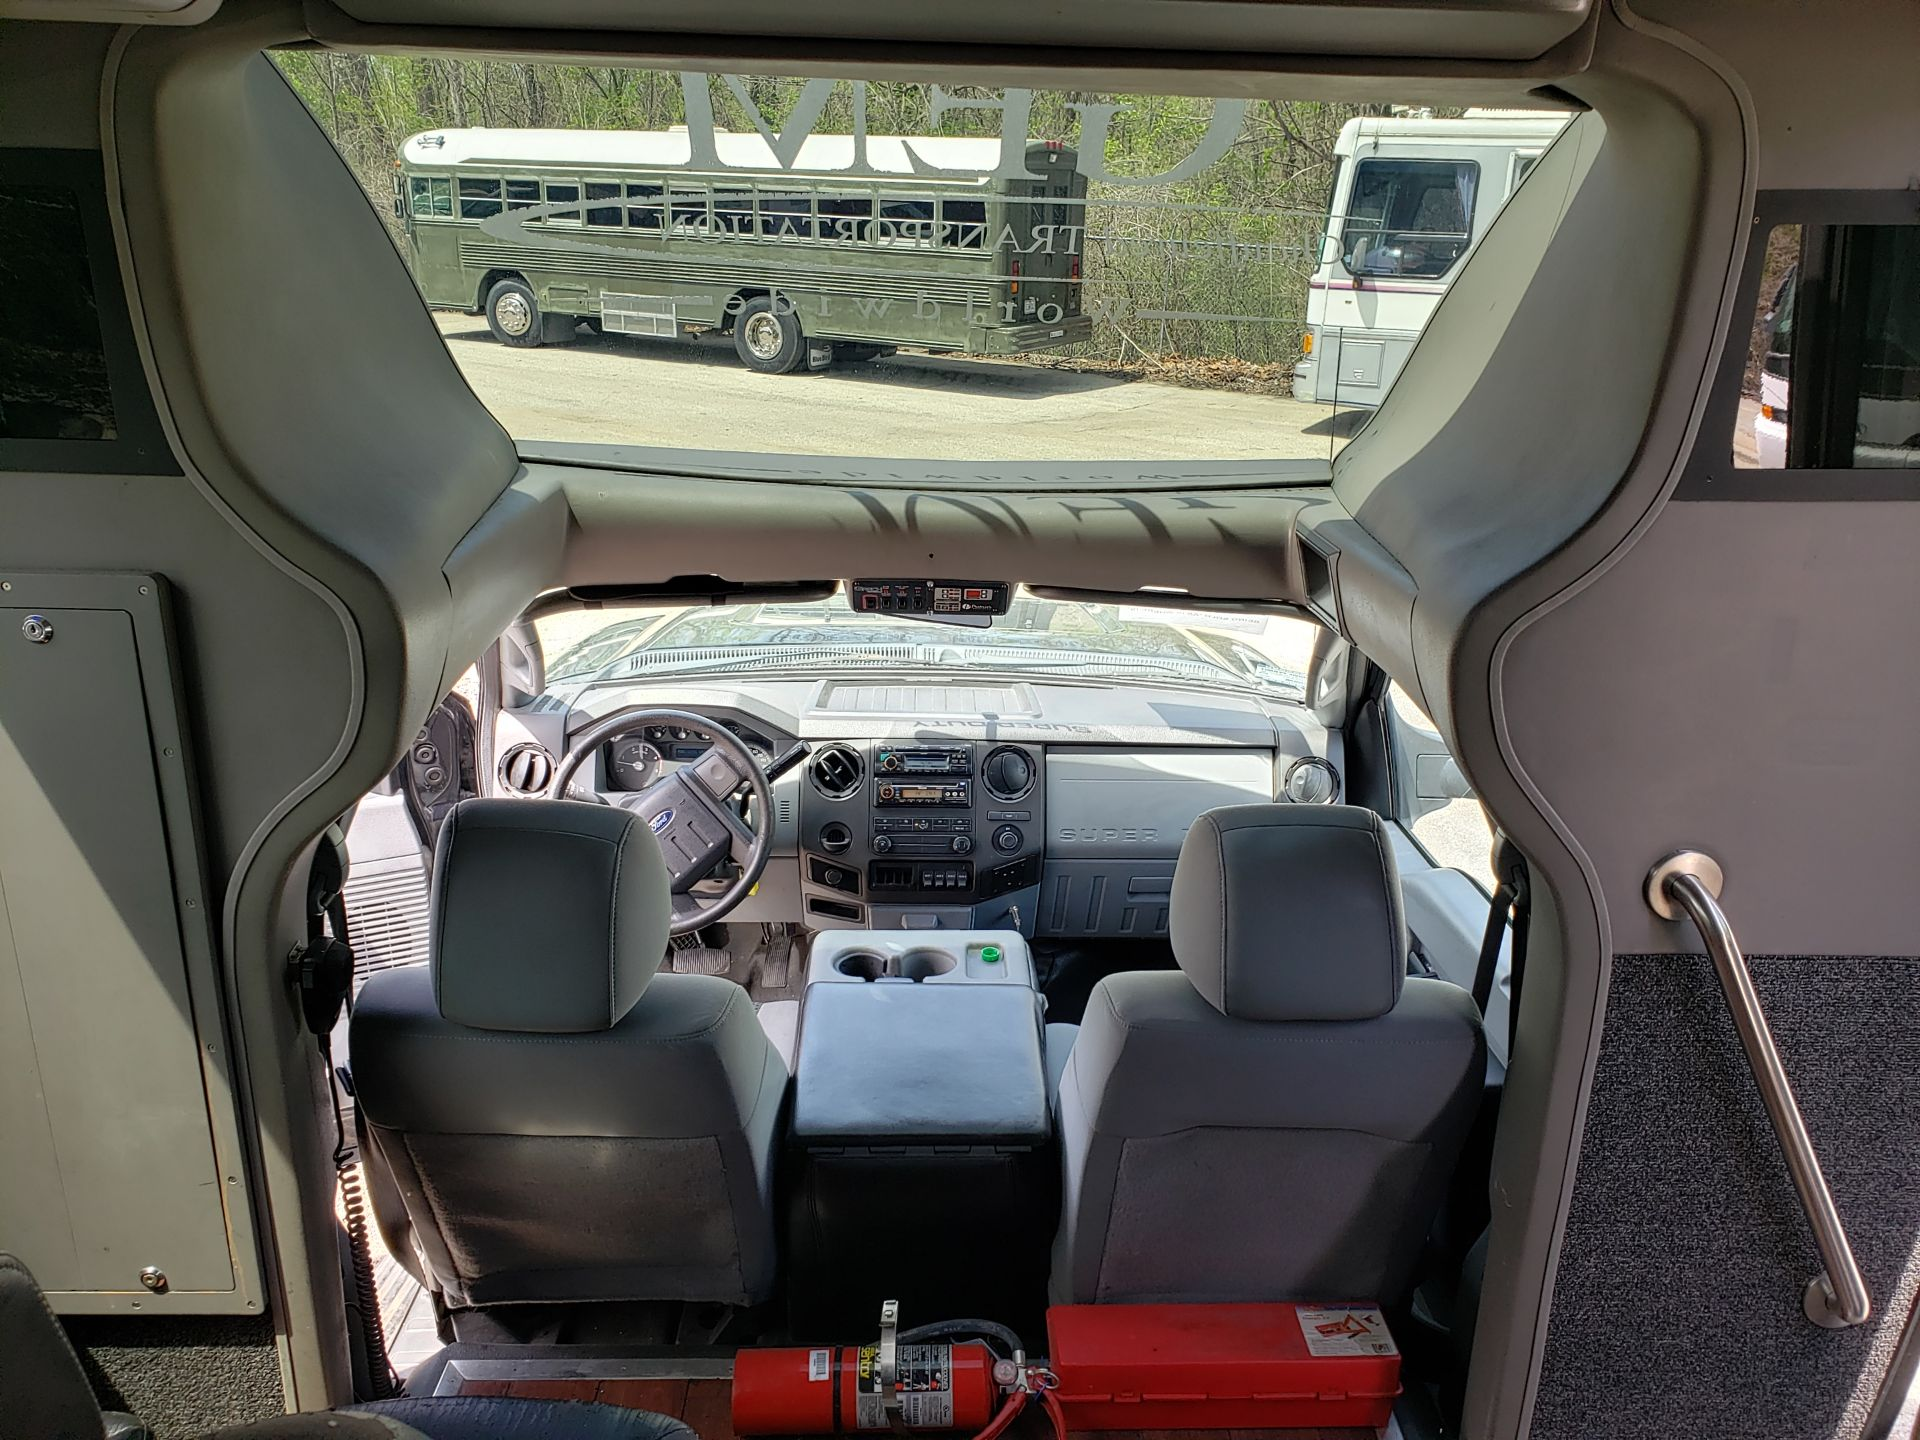 2013 Ford F550SD XL Grech Motors 33-Pass Shuttle Bus - Image 14 of 18